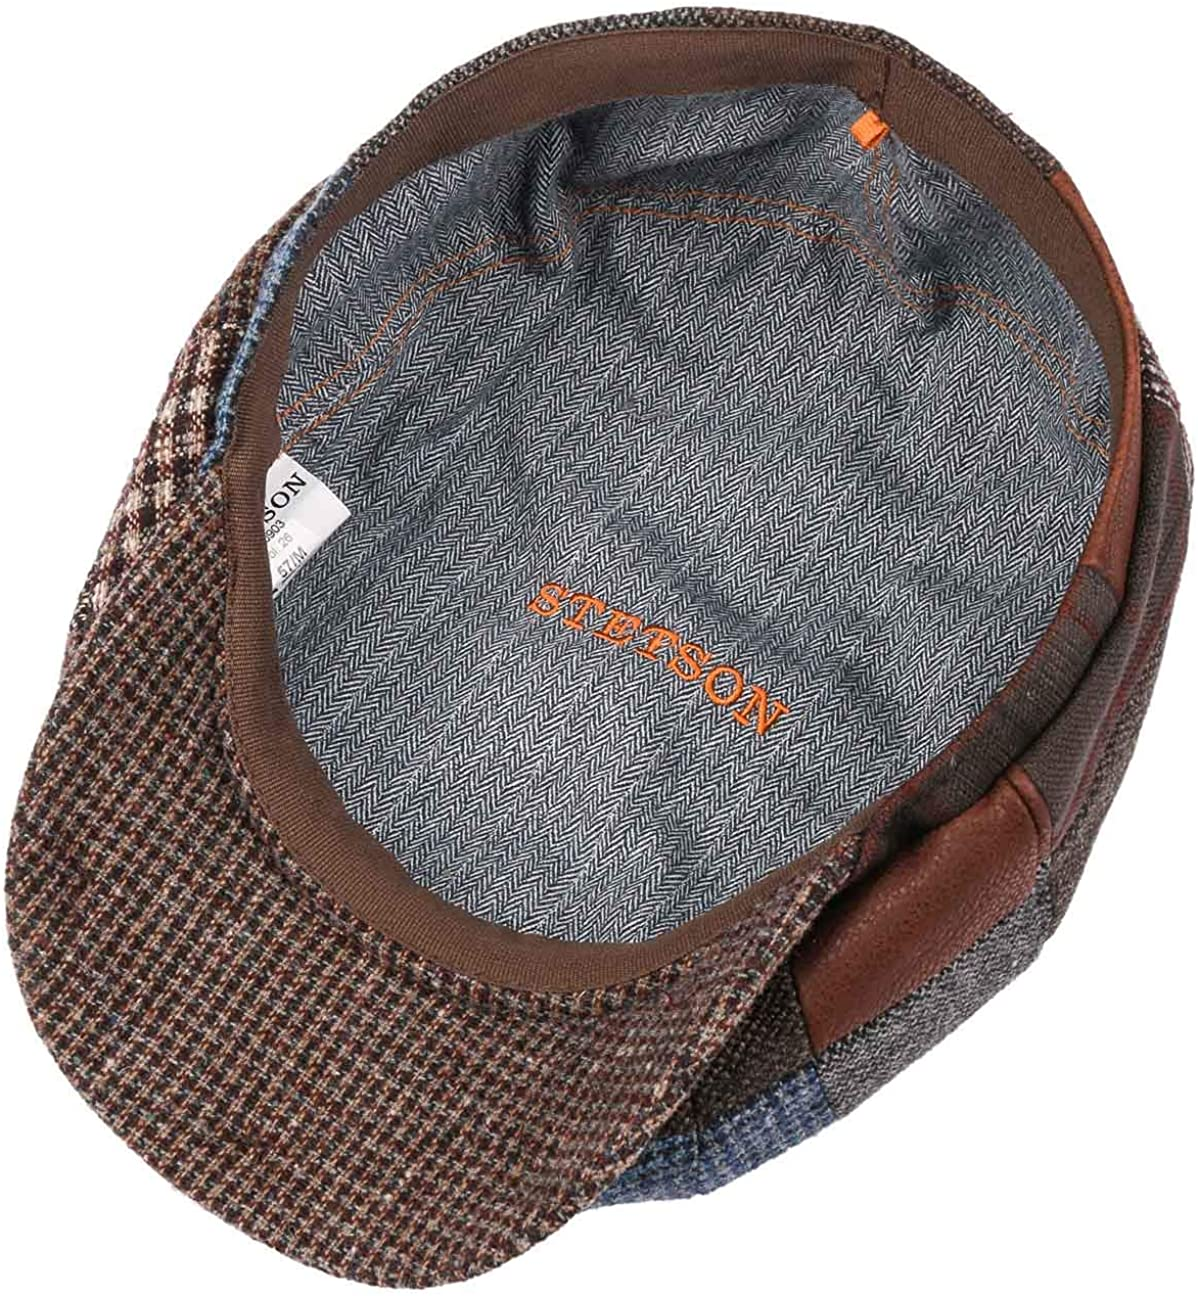 Stetson Gorra Hatteras Patchwork Check Hombre - Made in The EU de ...